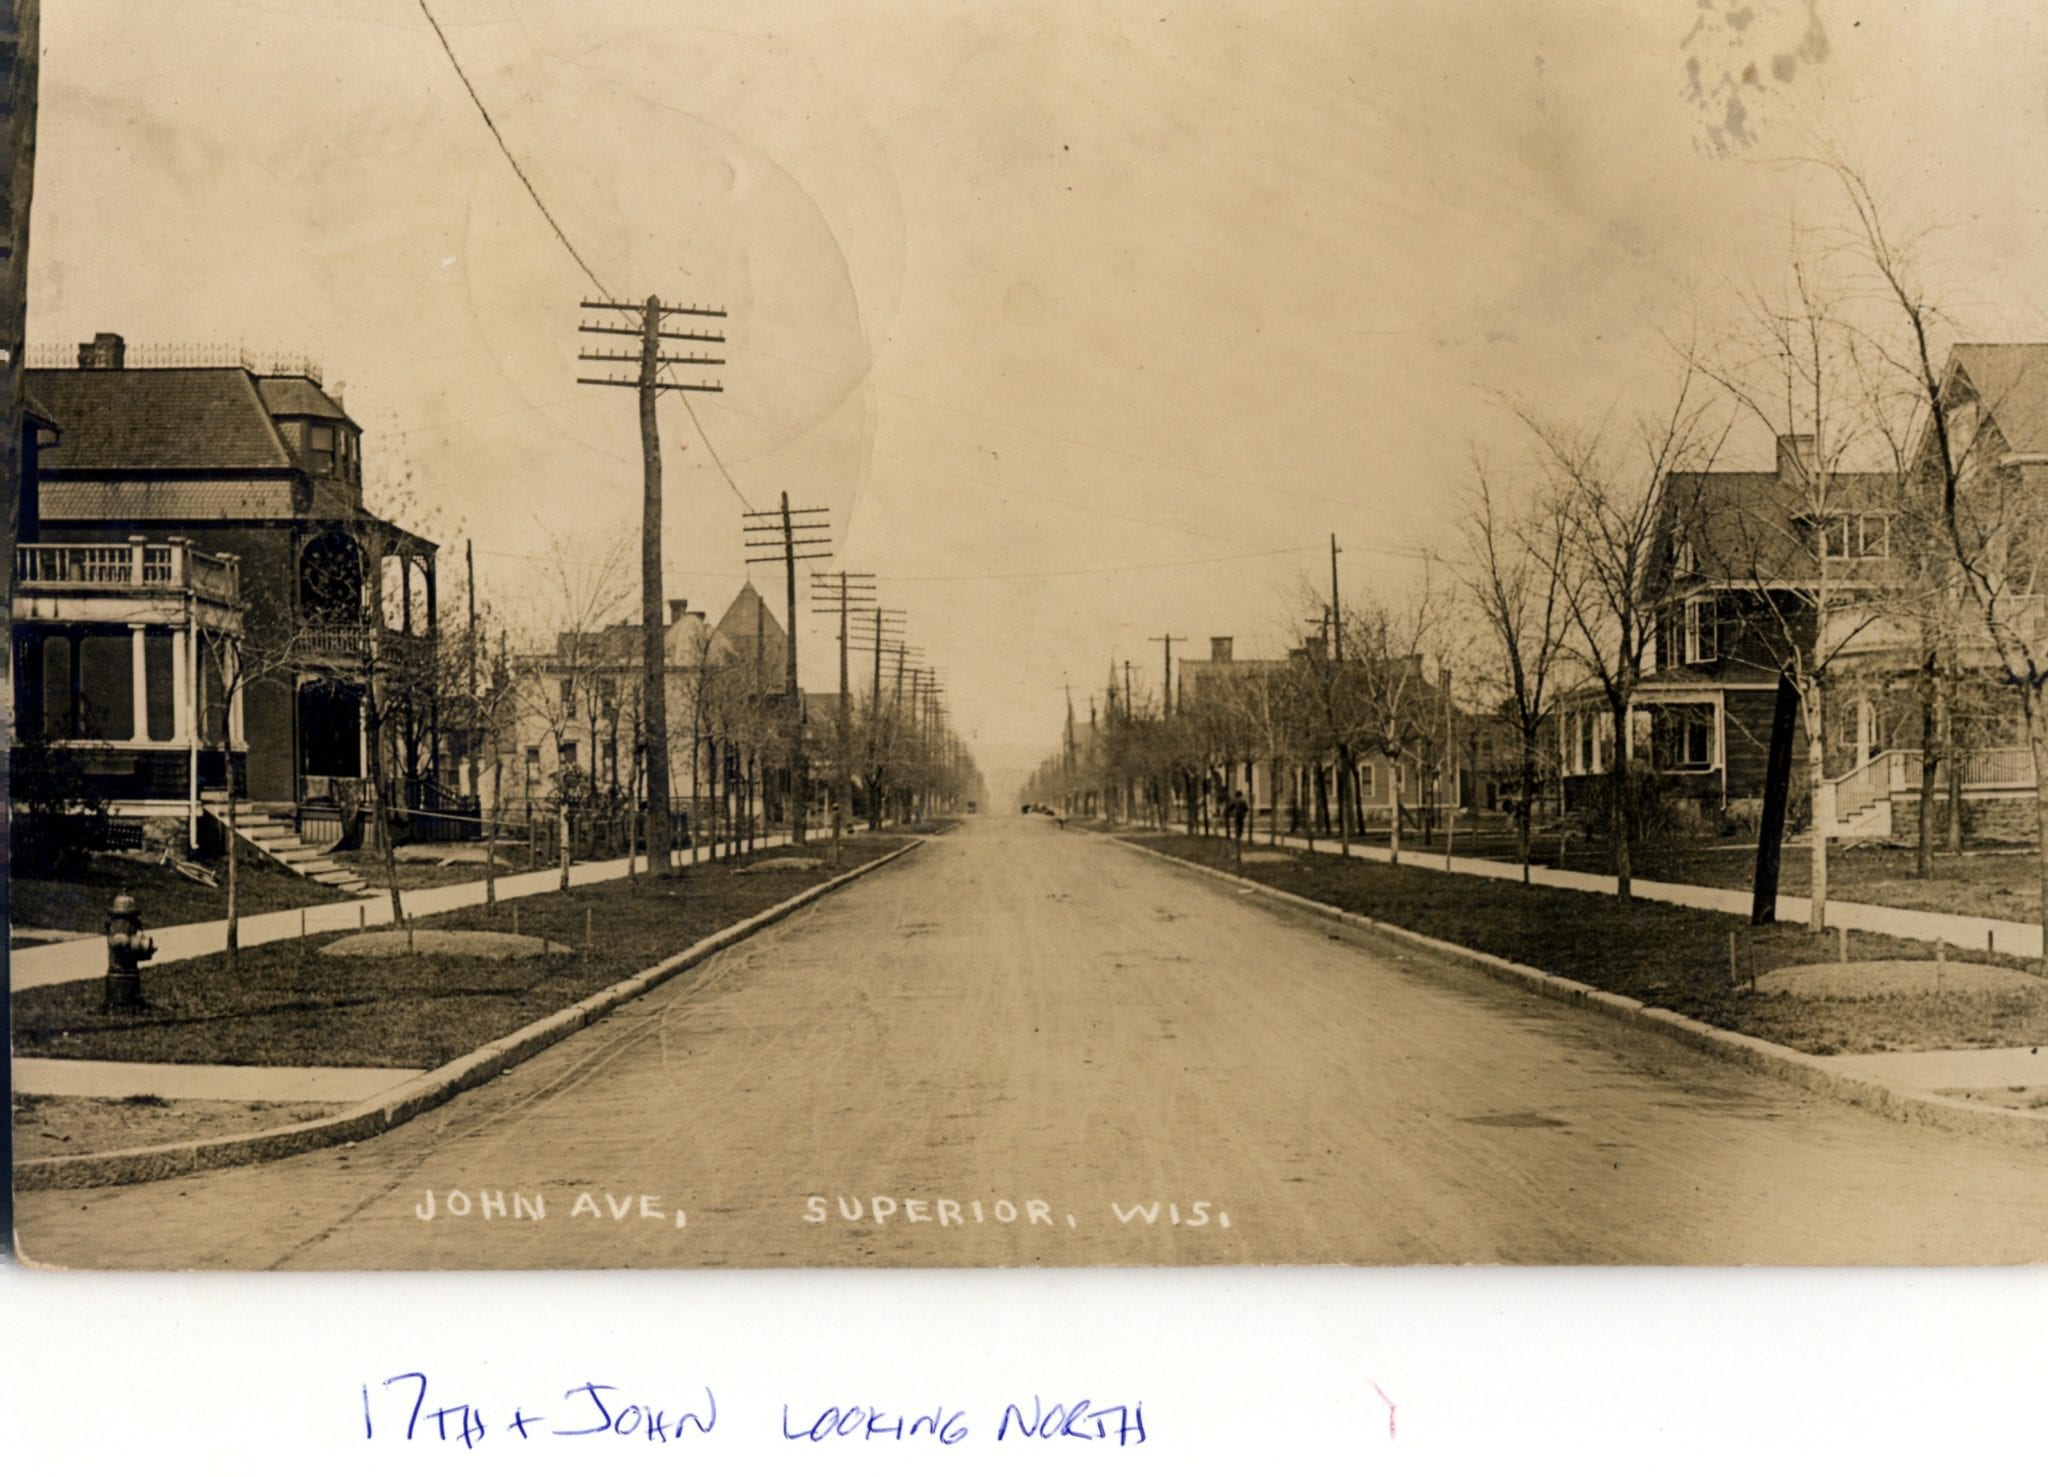 17th and John Ave. Looking North